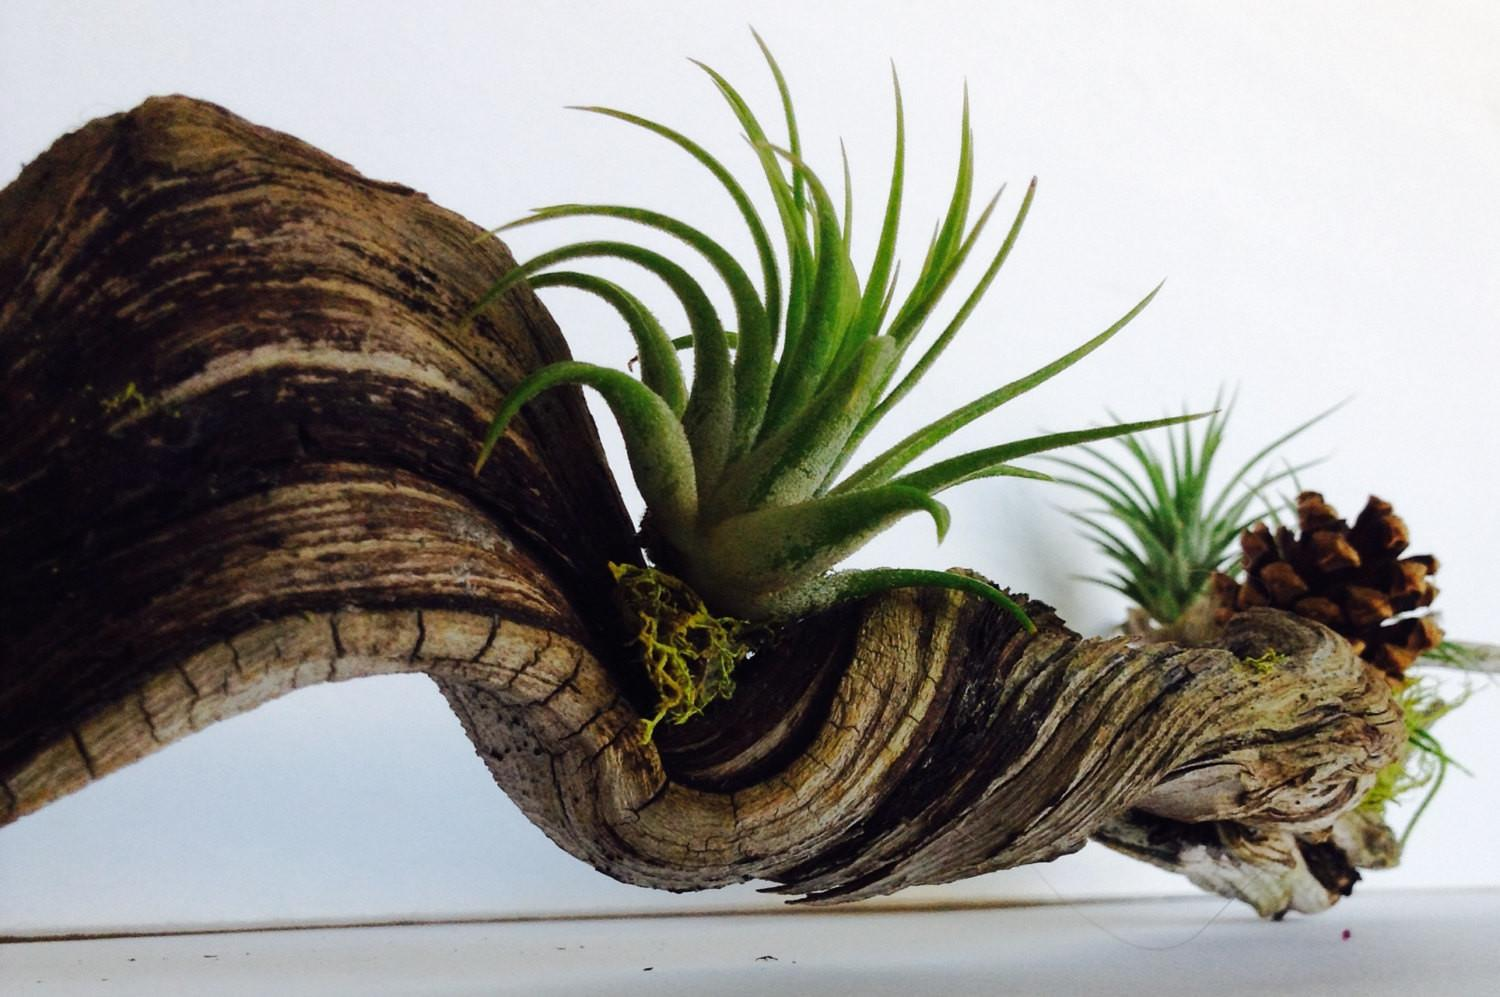 Sample Driftwood Airplants Green Moss Details Living